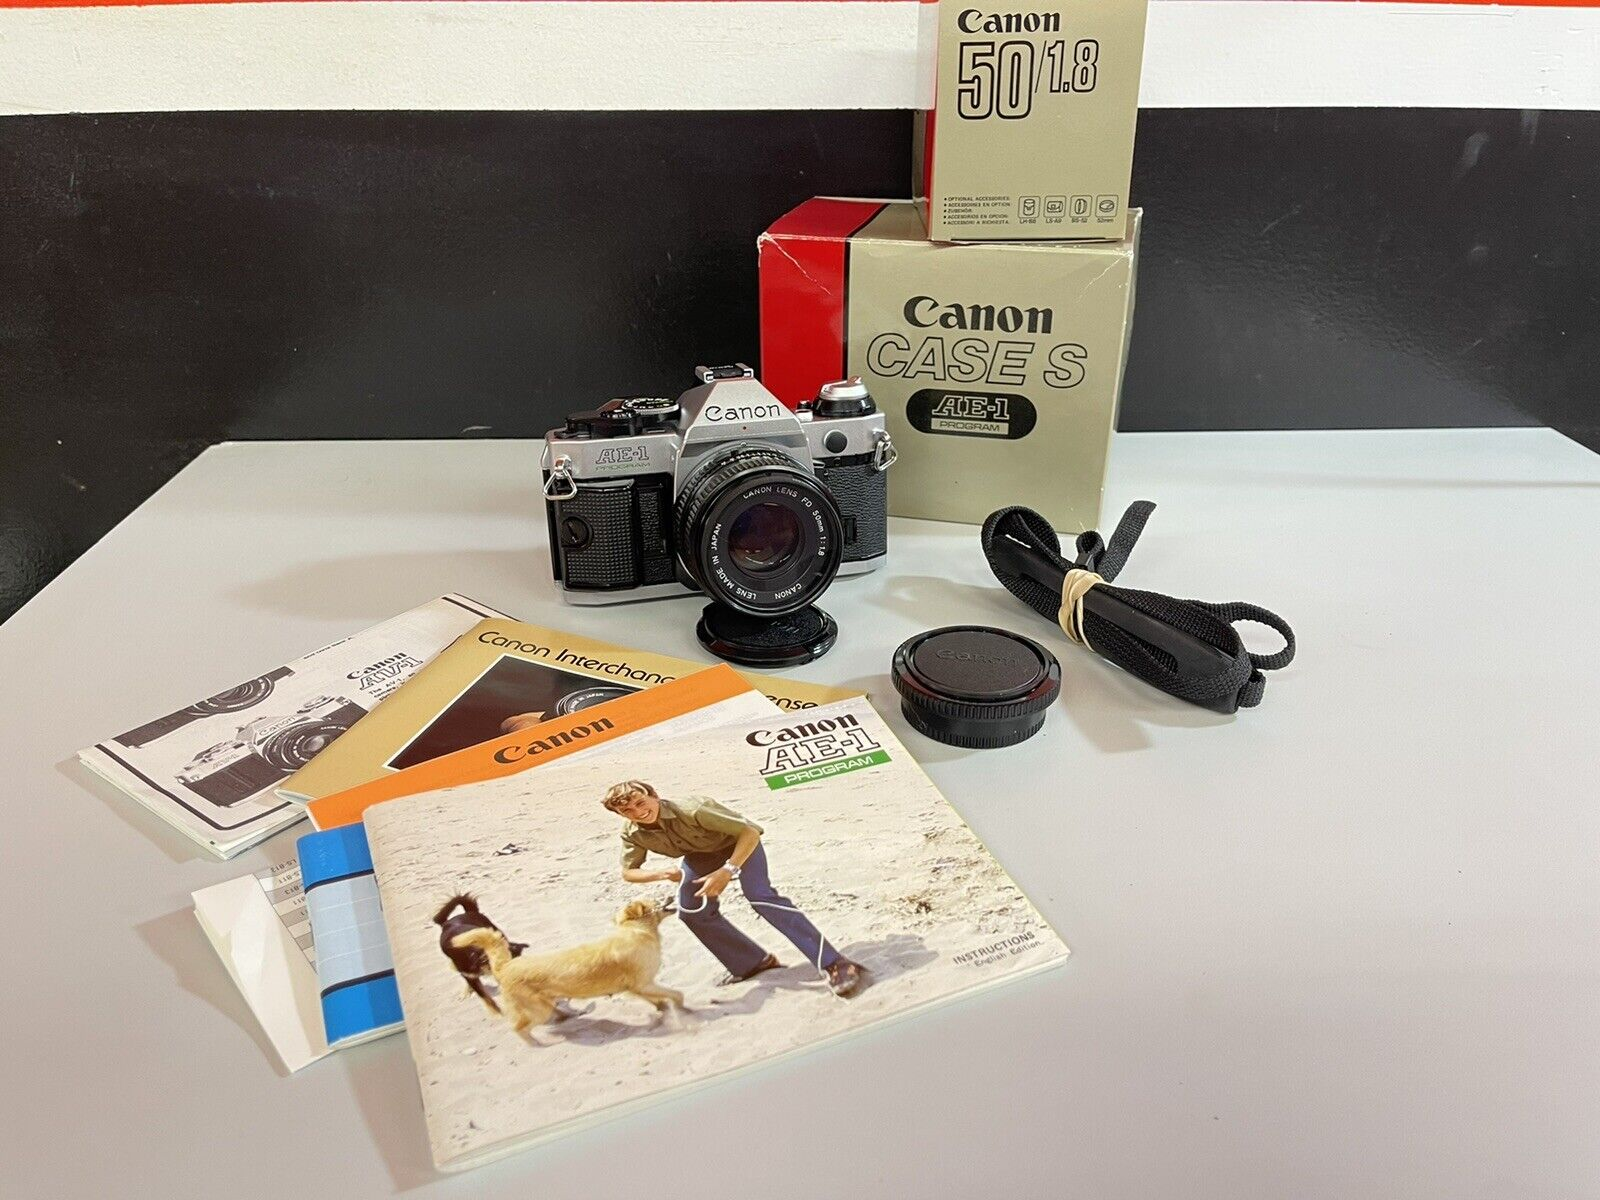 Canon AE-1 Program Camera with Wide to Short Telephoto Lens Vintage Working 1980s 35MM Film SLR with Hippy Neck Strap and Free Shipping